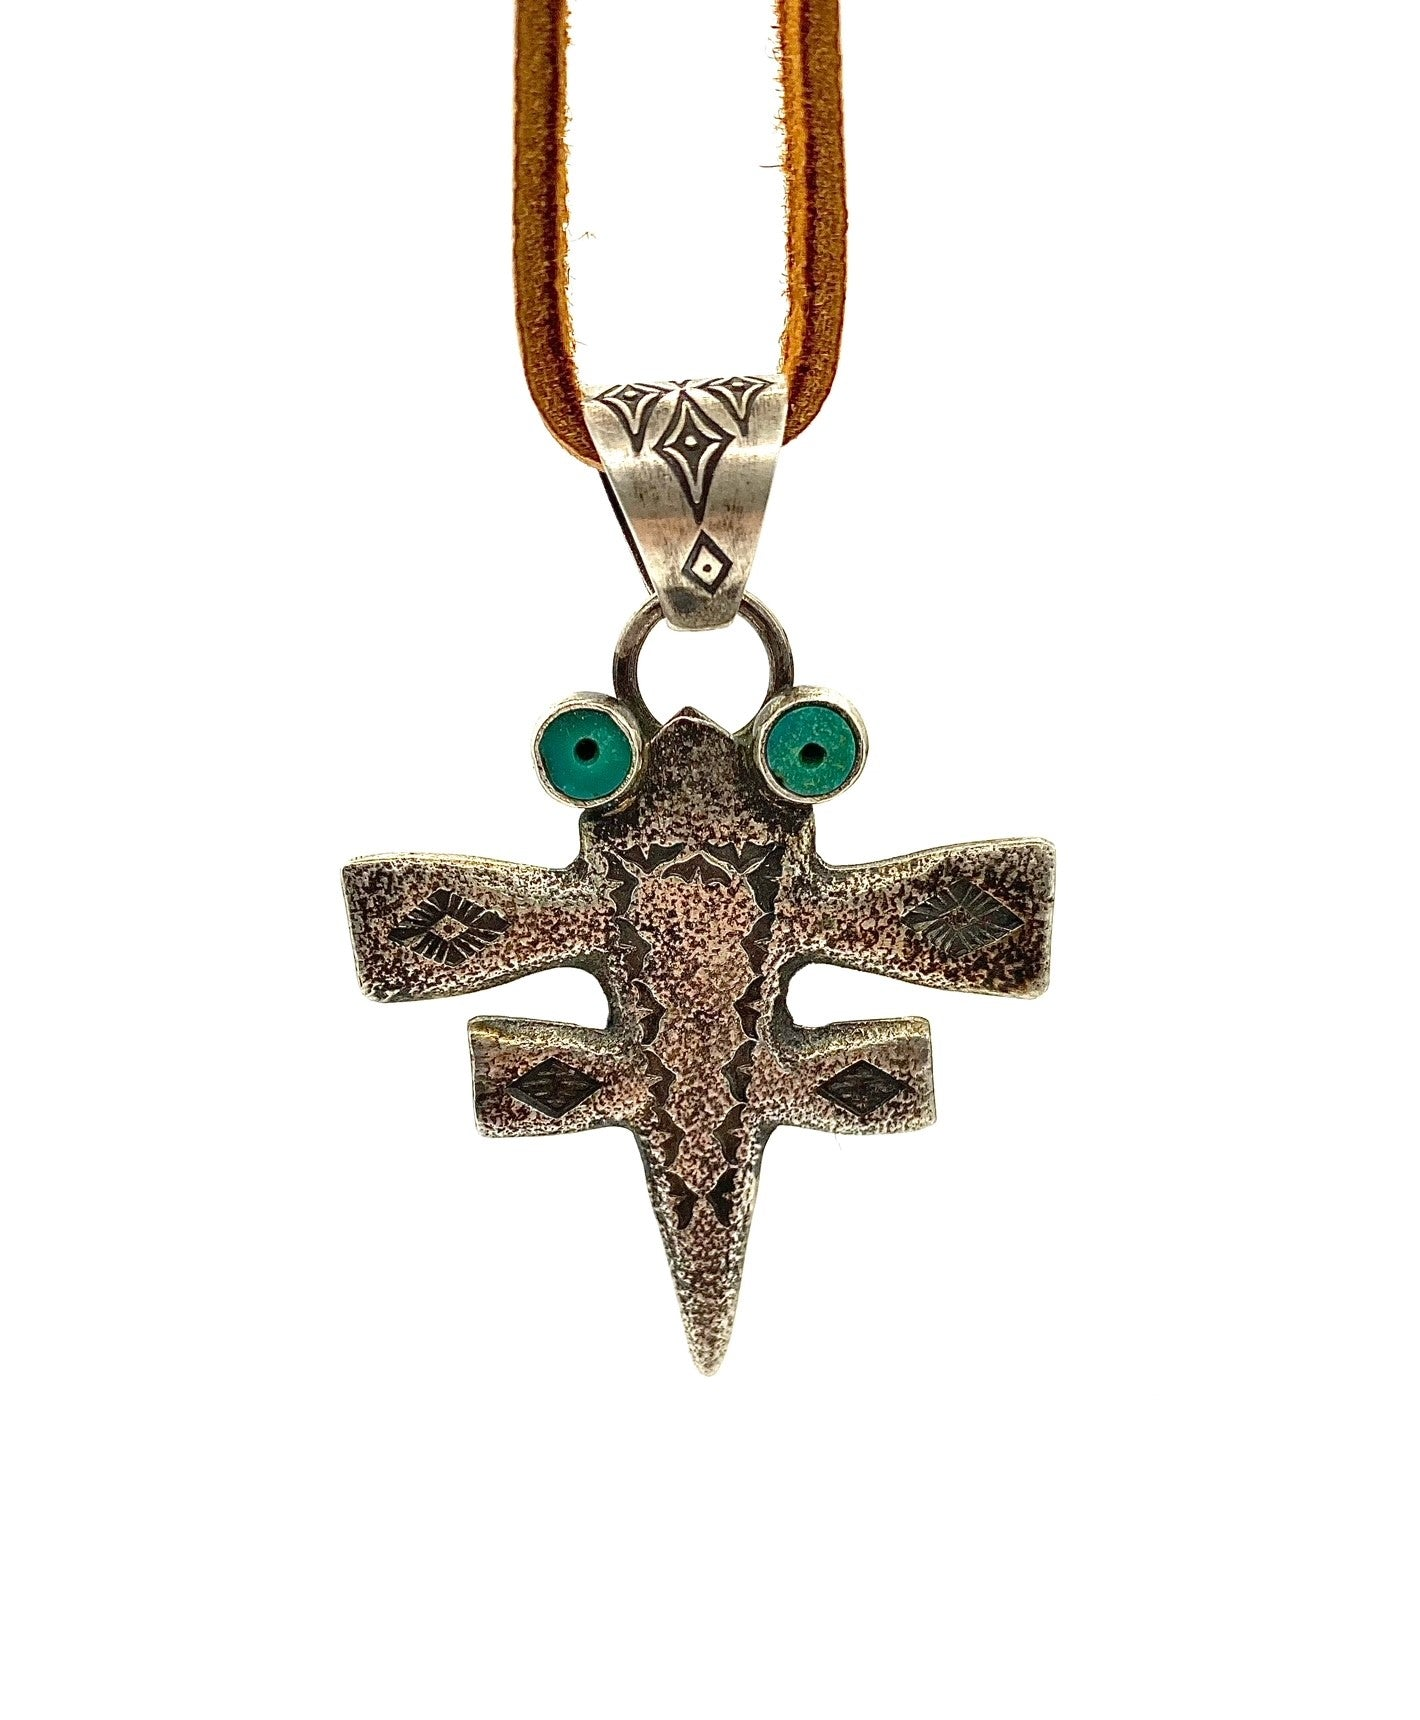 Sterling Silver and Turquoise Dragonfly Pendant Necklace